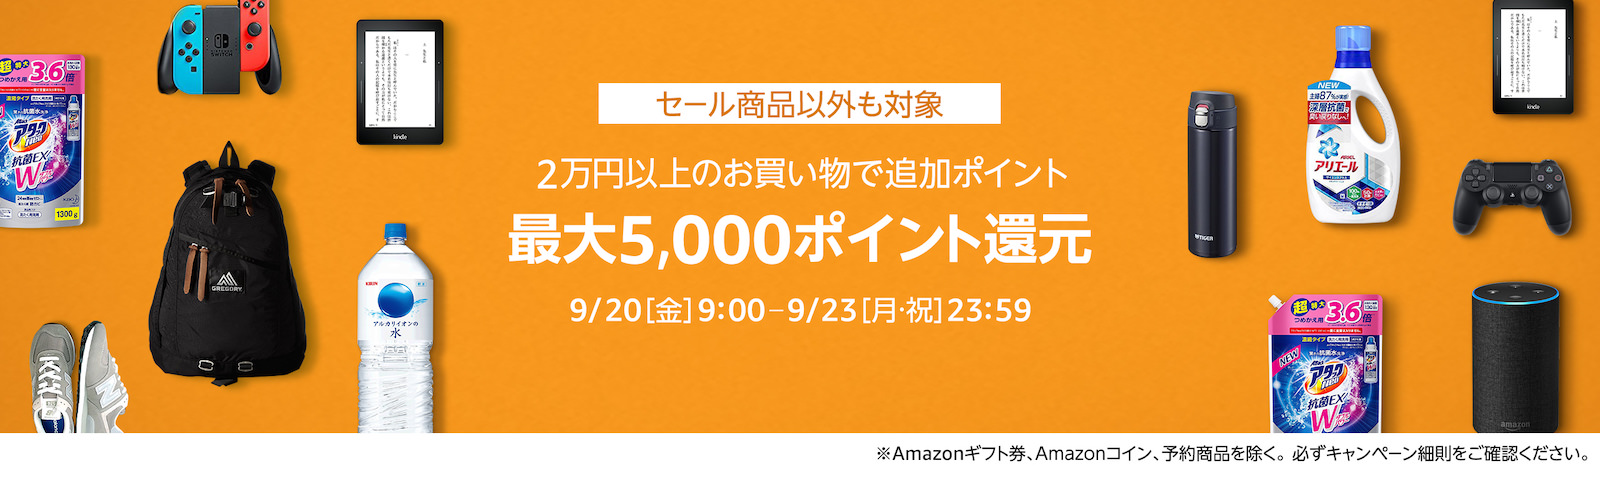 Amazon Timesale pointback campaign 1